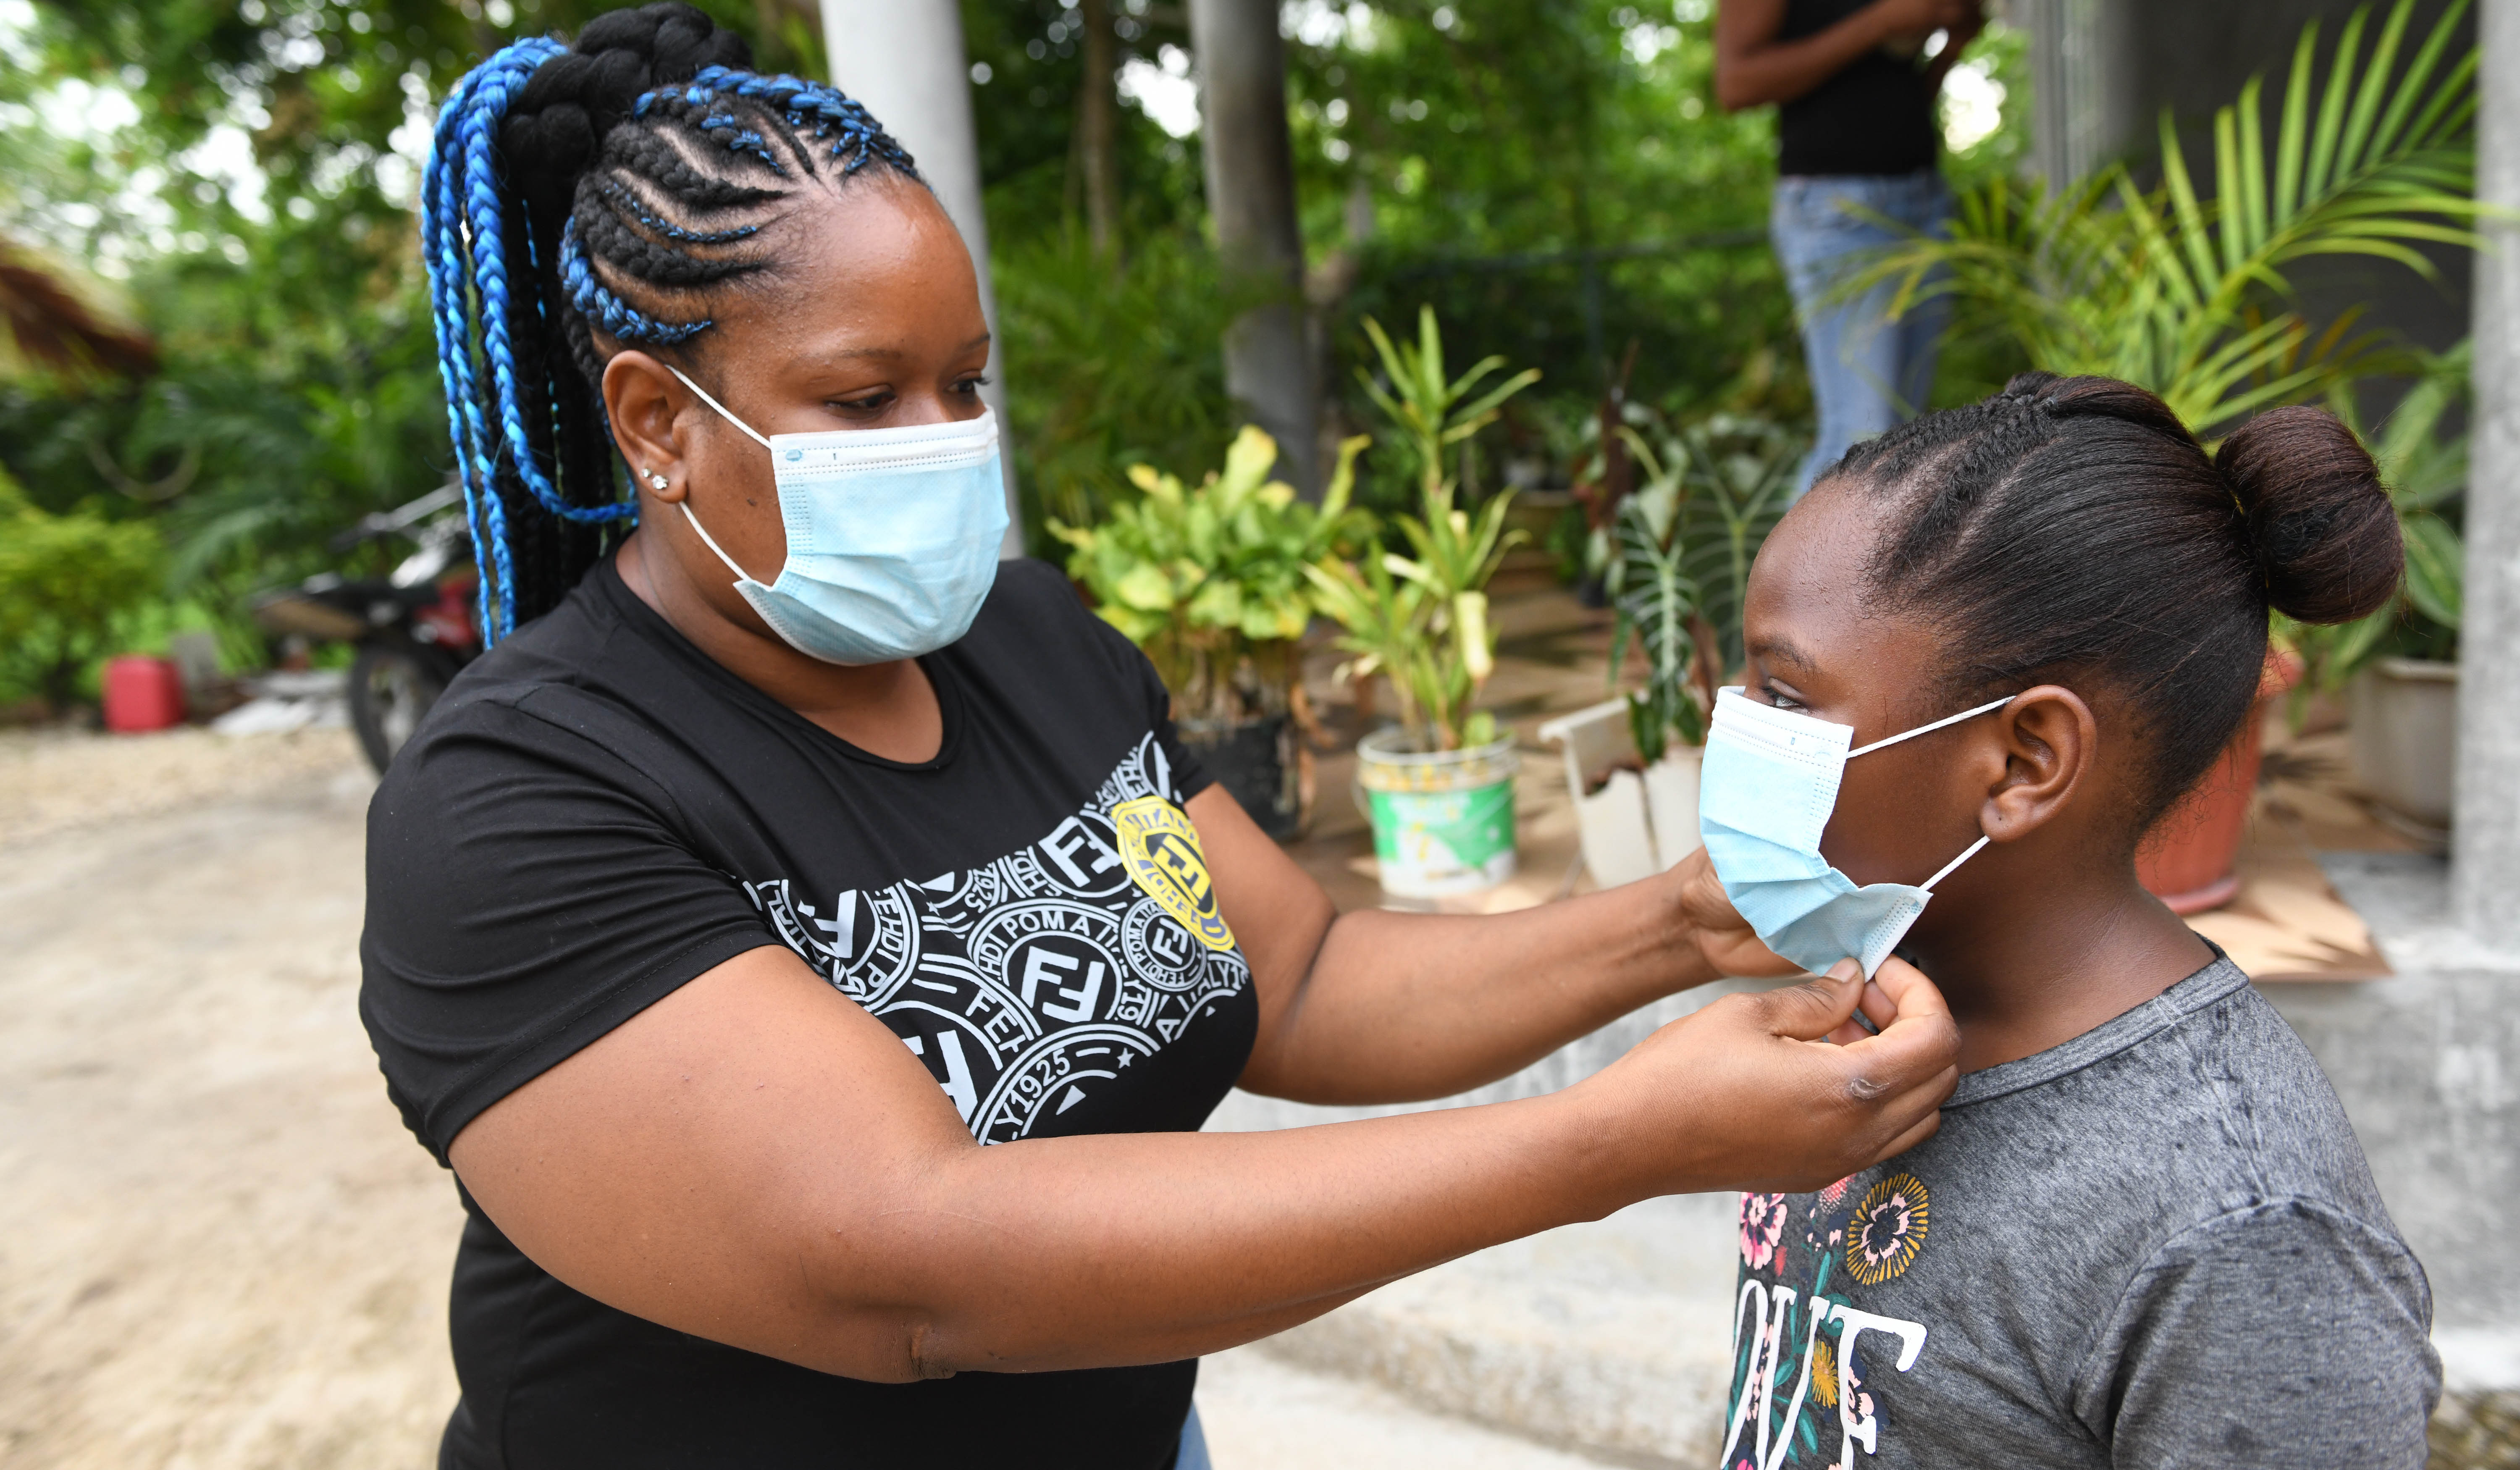 Kaedia Ellis Johson adjust the face mask for her daughter Sasheena Johnson astudent of Little Bay Primary and Infant School. On Monday, September 7,2020. Little Bay is a mainly fishing community located in the parish of Westmoreland, the western end of the island of Jamaica.